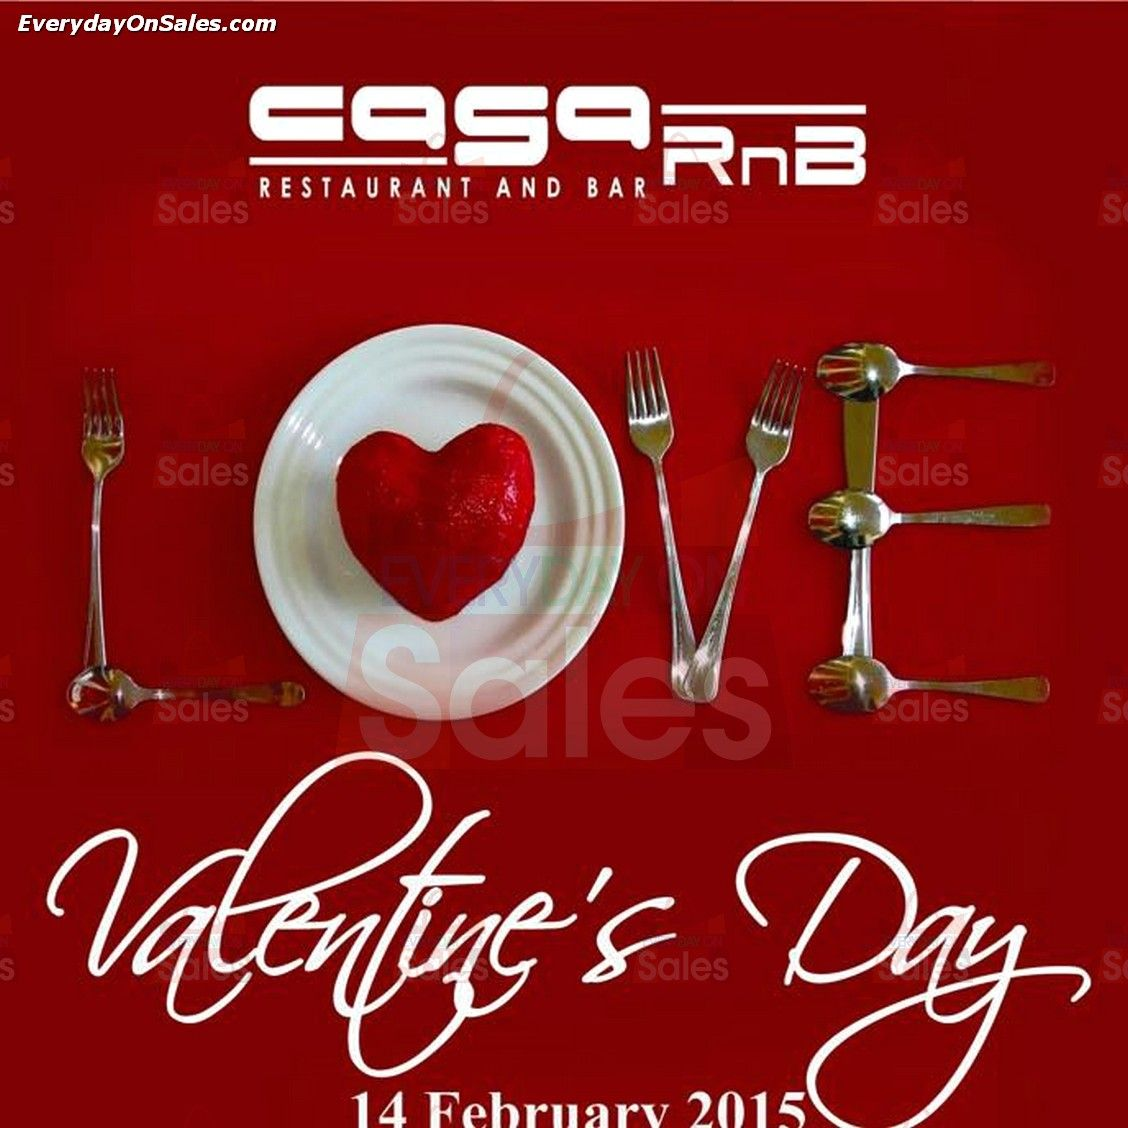 14 feb 2015 casa rnb restaurant and bar valentines day promotion